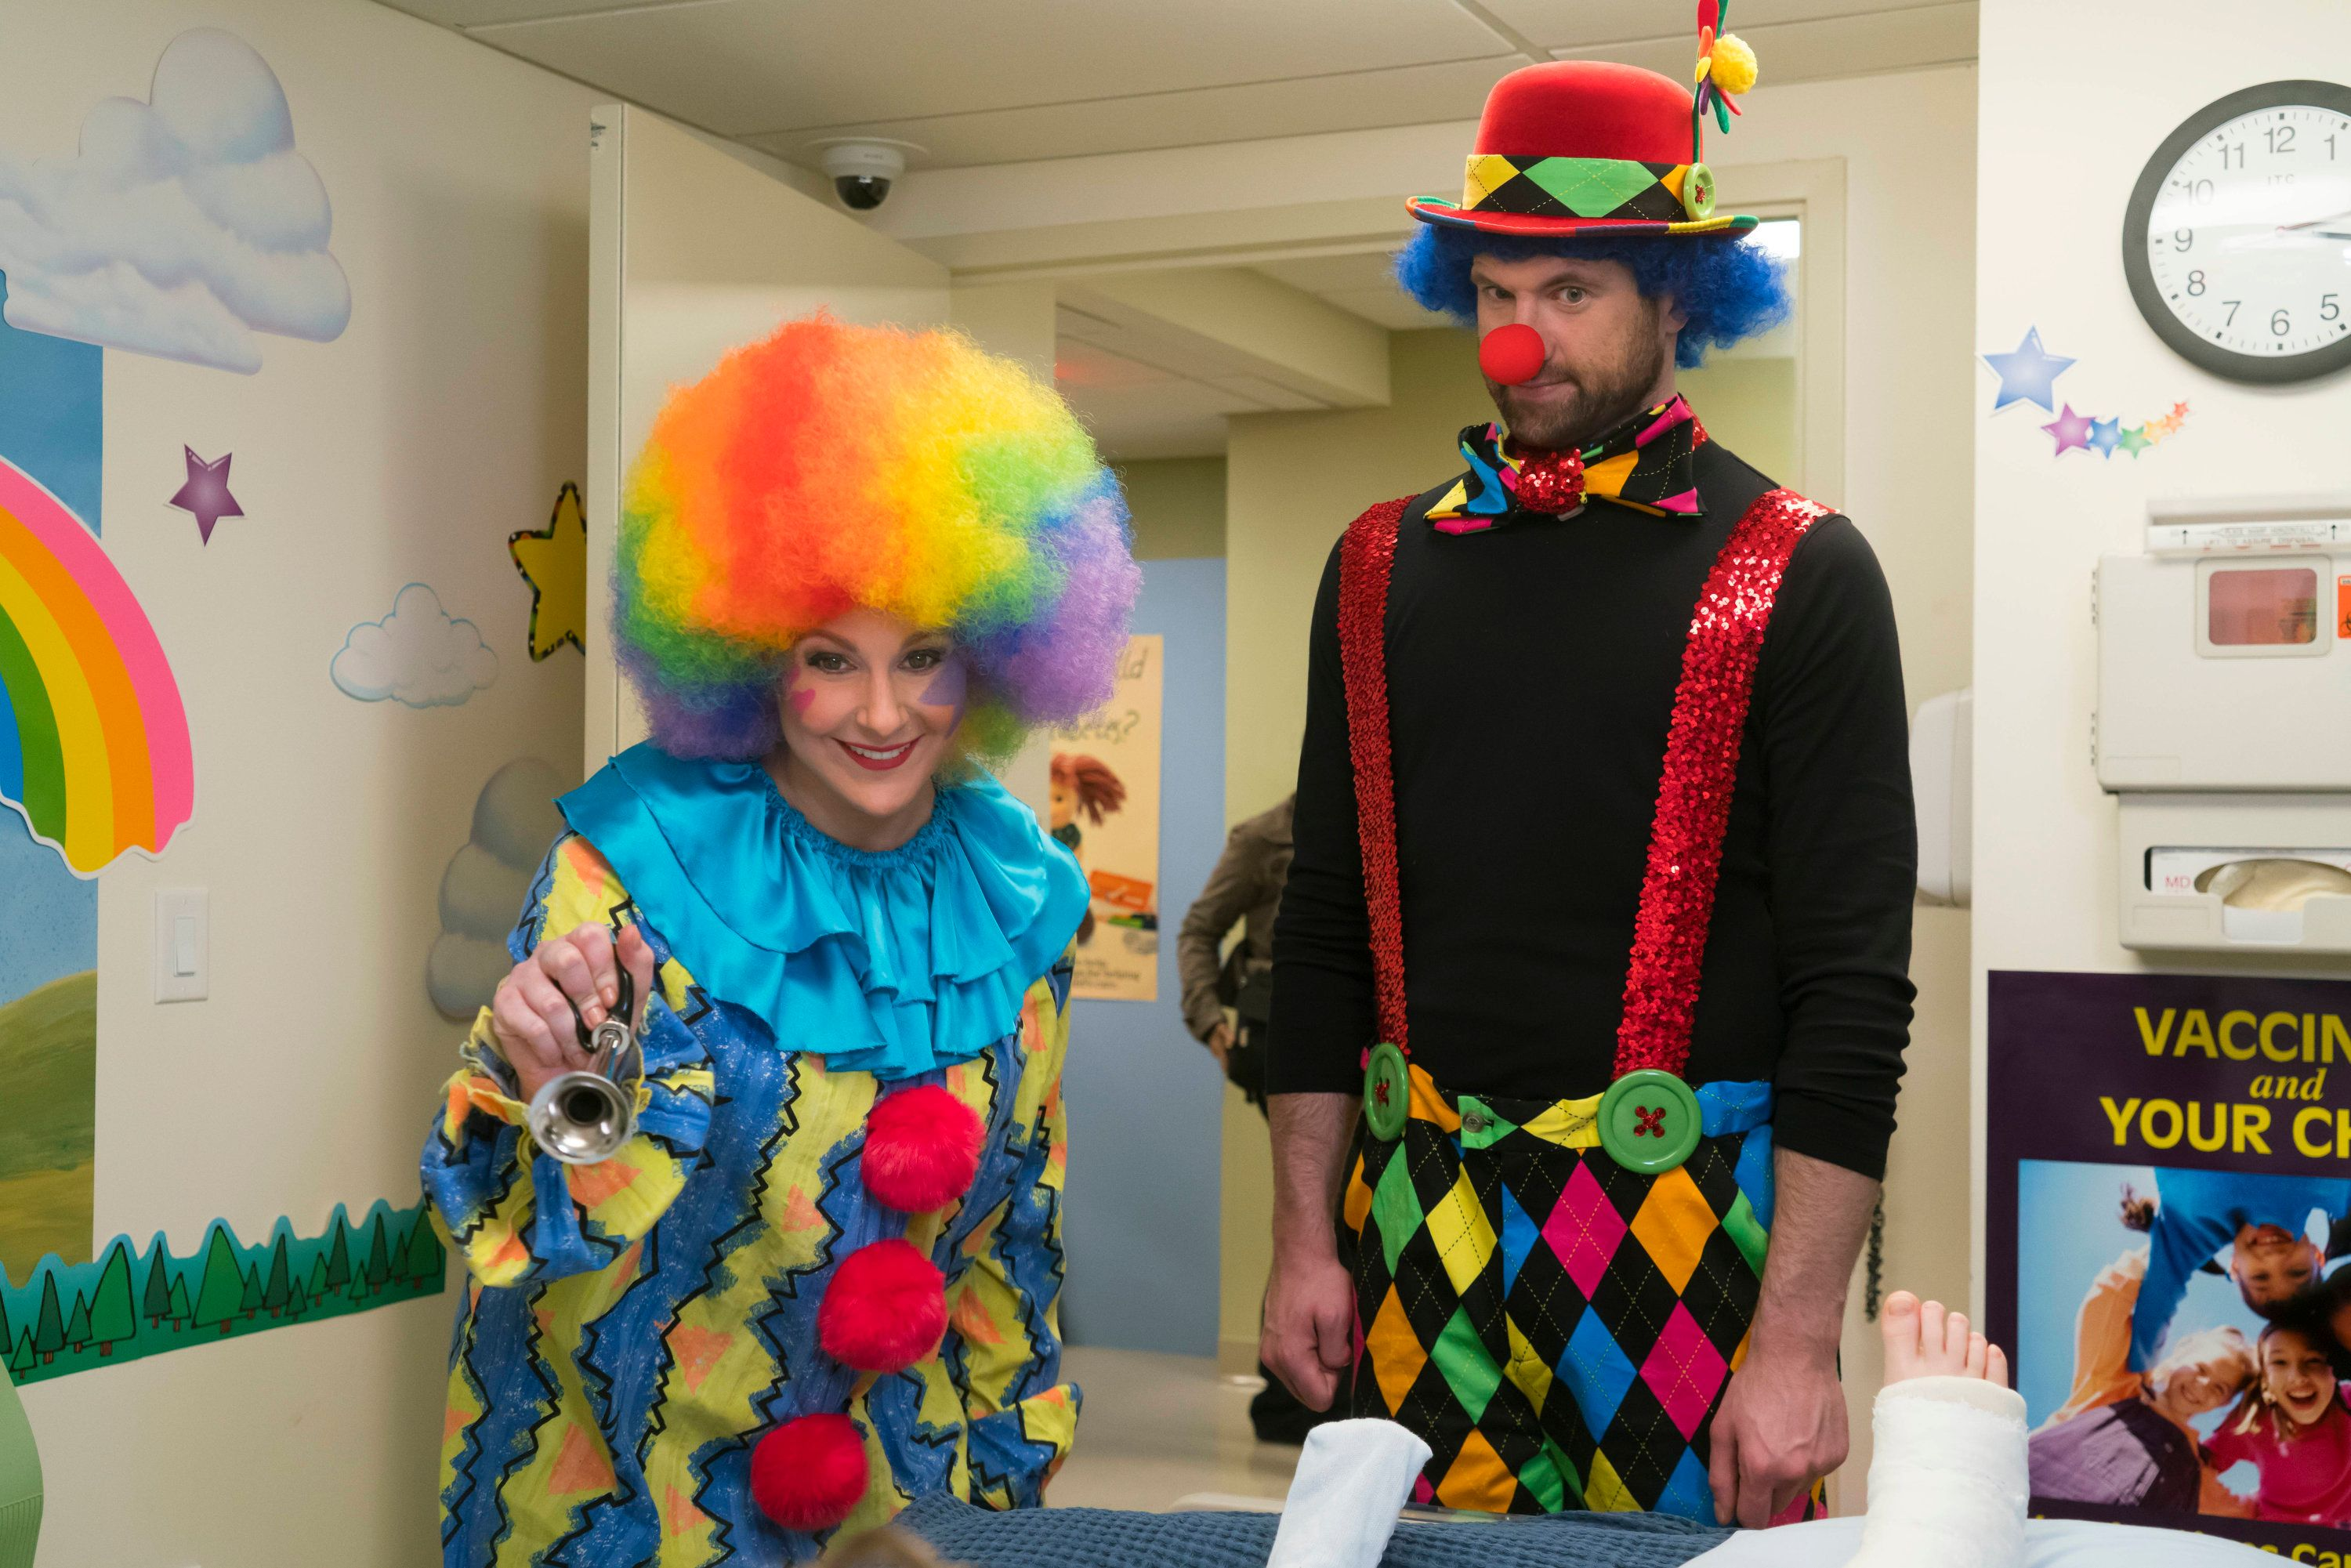 DIFFICULT PEOPLE -- 'Passover Bump' Episode 301 -- Pictured: (l-r) Julie Klausner as Julie Kessler, Billy Eichner as Billy Epstein -- (Photo by: Barbara Nitke/Universal Cable Productions/NBCU Photo Bank via Getty Images)